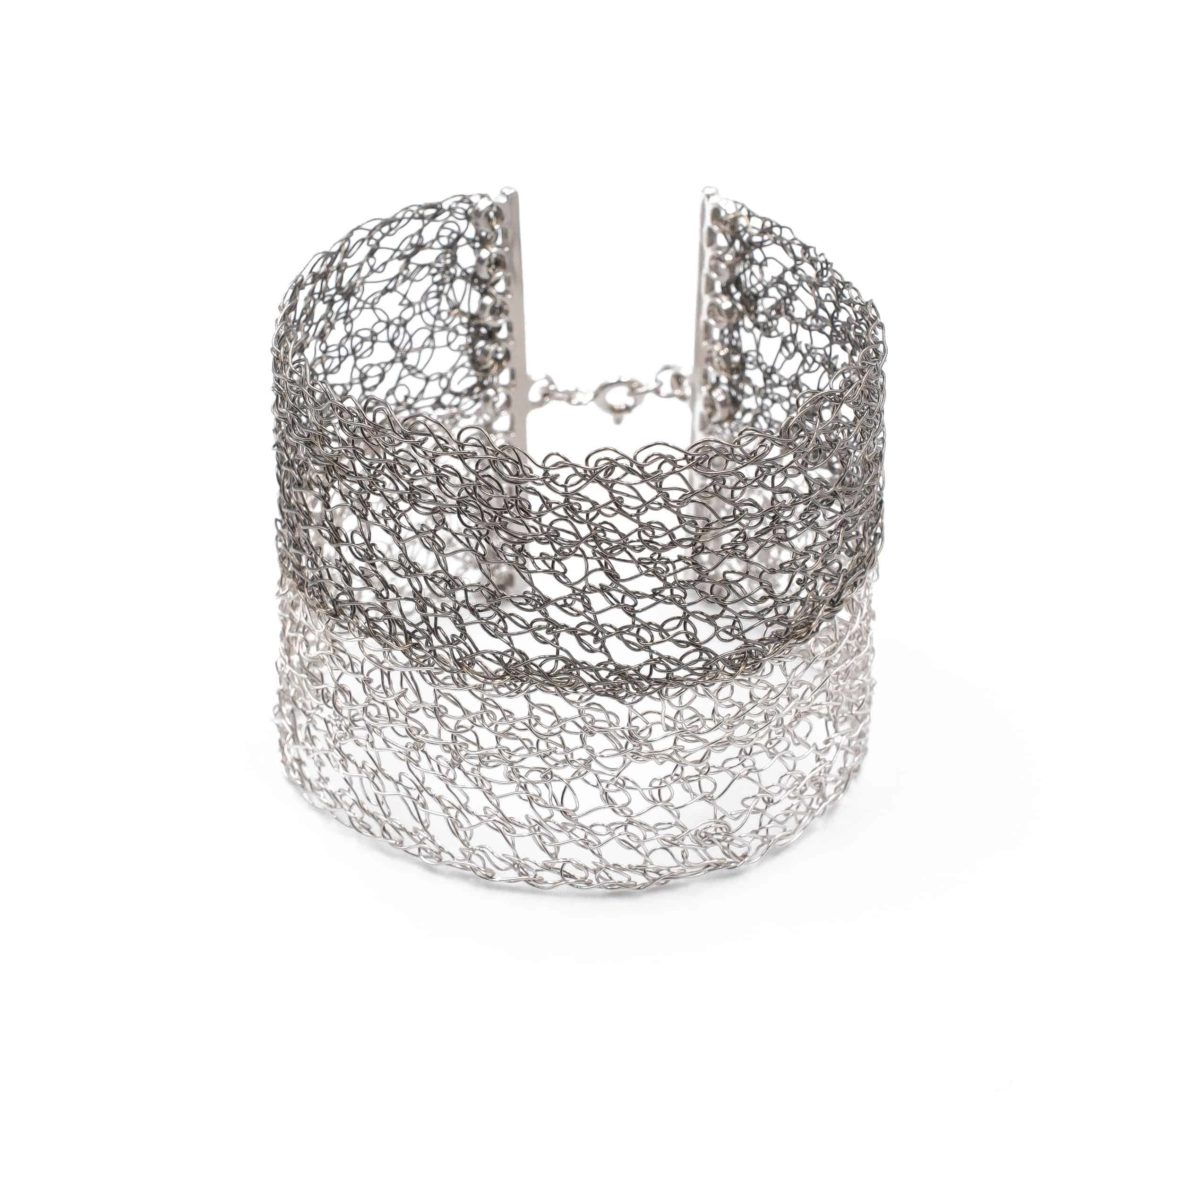 front view of platinum and black rhodium cuff bracelet for women